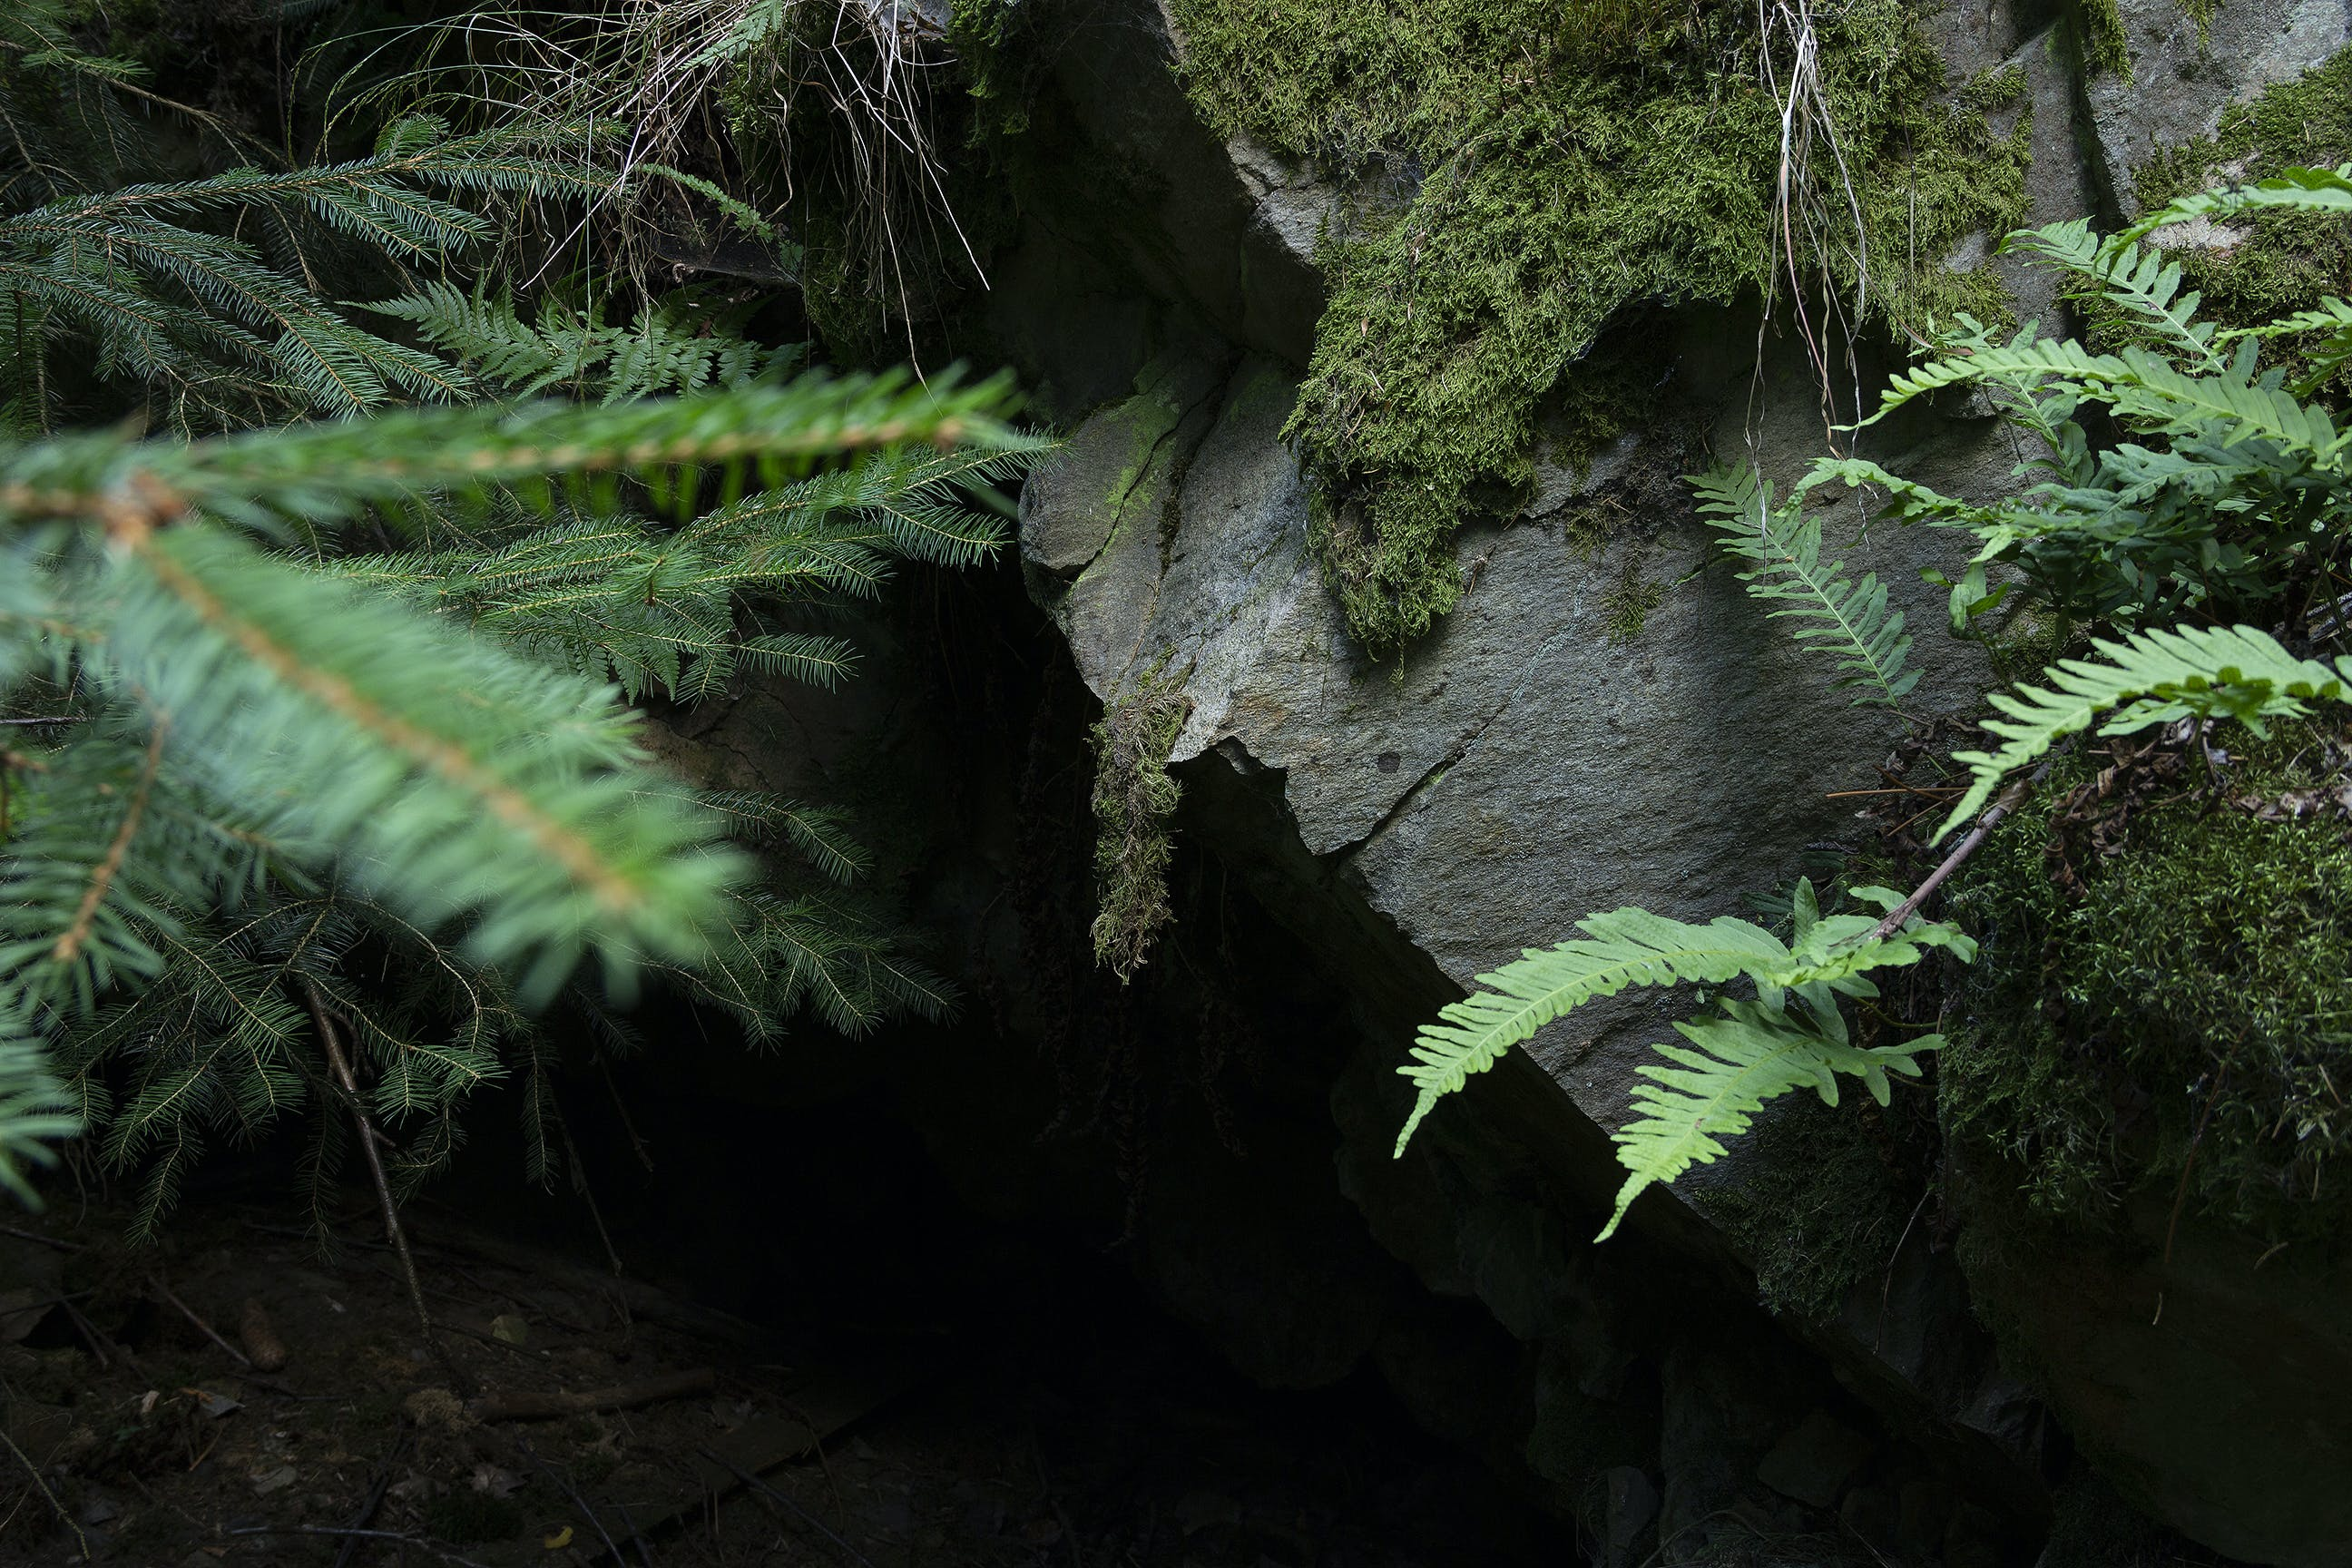 Photography of Fern Plants